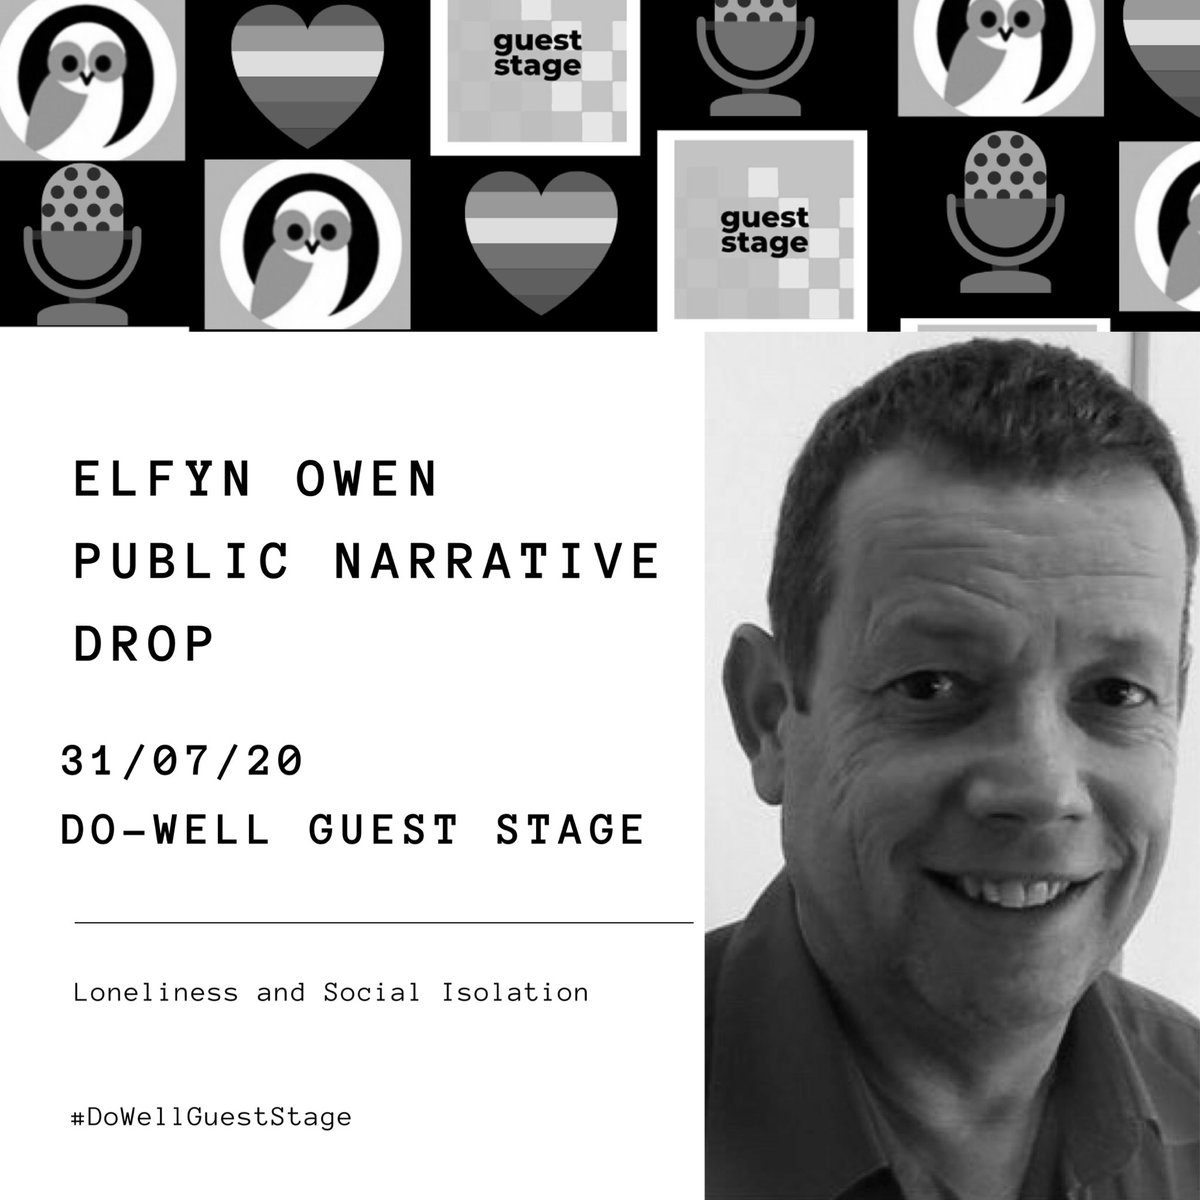 We can't wait to welcome @Elfyn_Canllaw to our #DoWellGuestStage next Friday 31/07/20 he's a man on a mission and we'd encourage anyone bothered by #loneliness and #socialisolation to hear what he has to say. Reserve a 10 minute space in your diary.